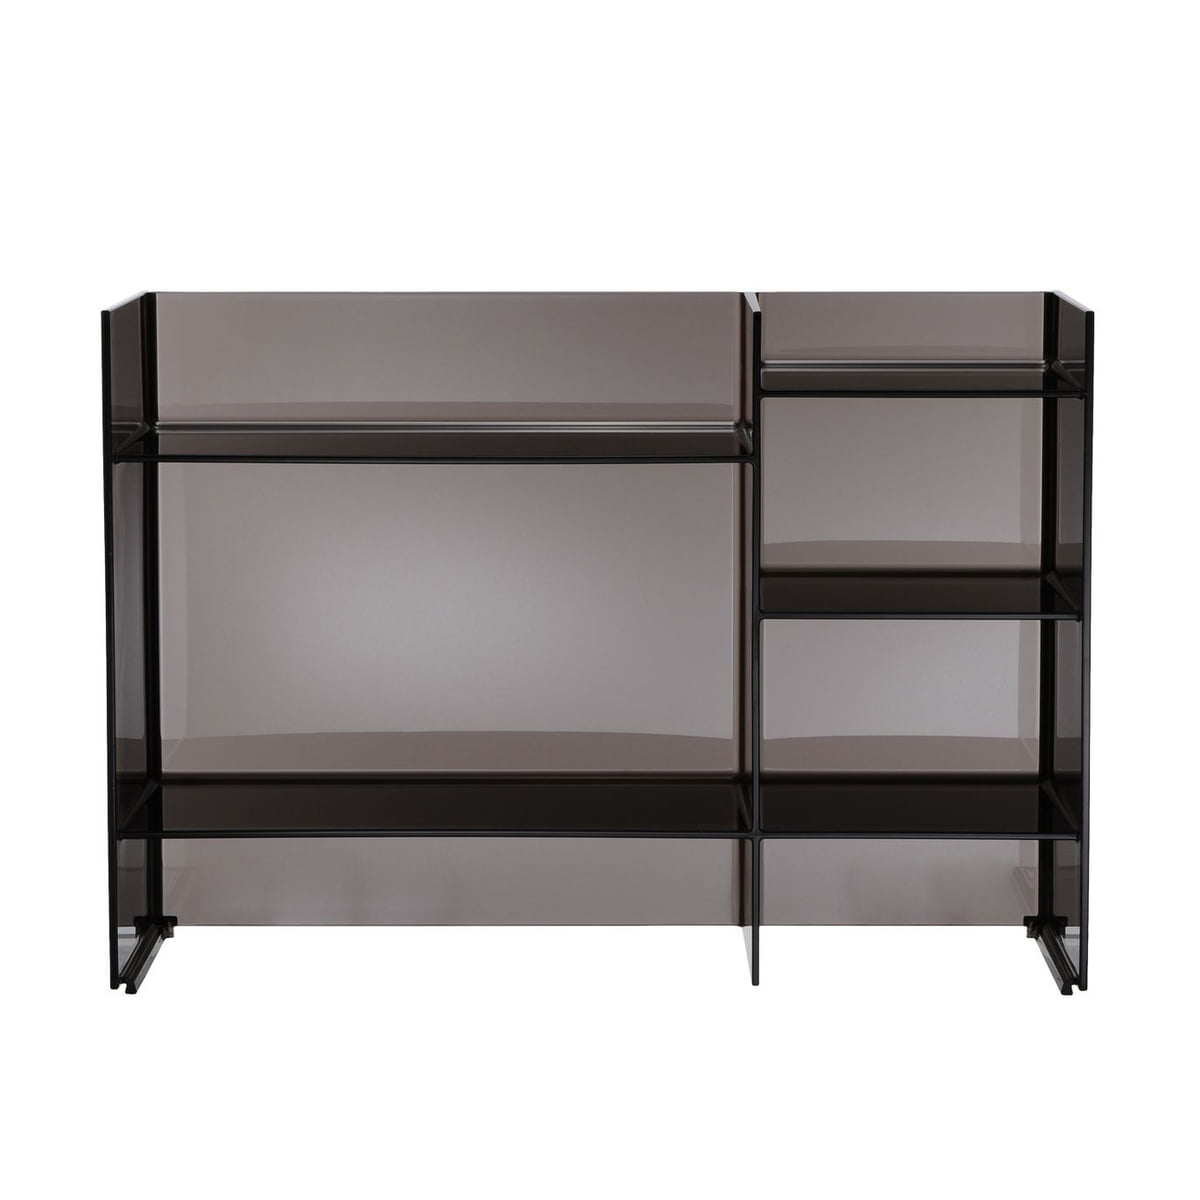 Sound Rack Regal Von Kartell Connox Shop